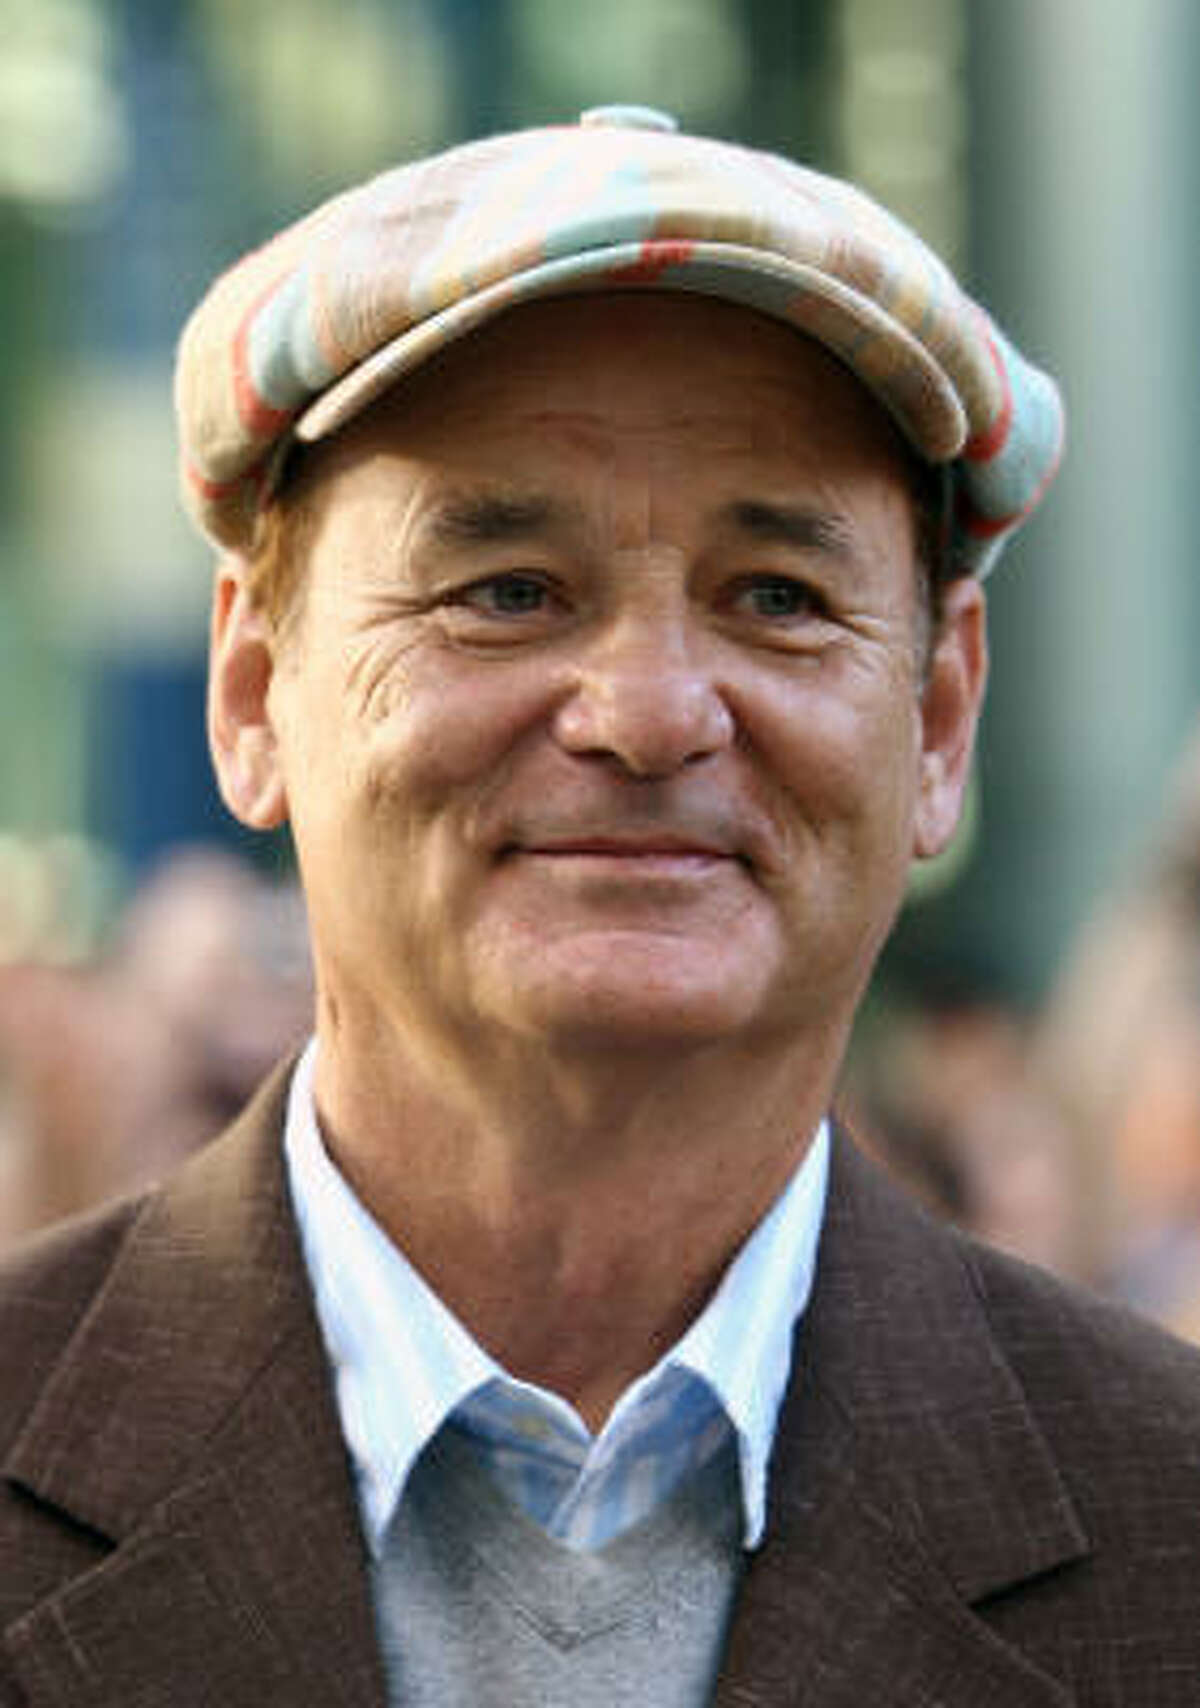 Bill Murray makes a living-dead appearance in Zombieland, which opens in theaters today. Check out some other noteworthy movie cameos.